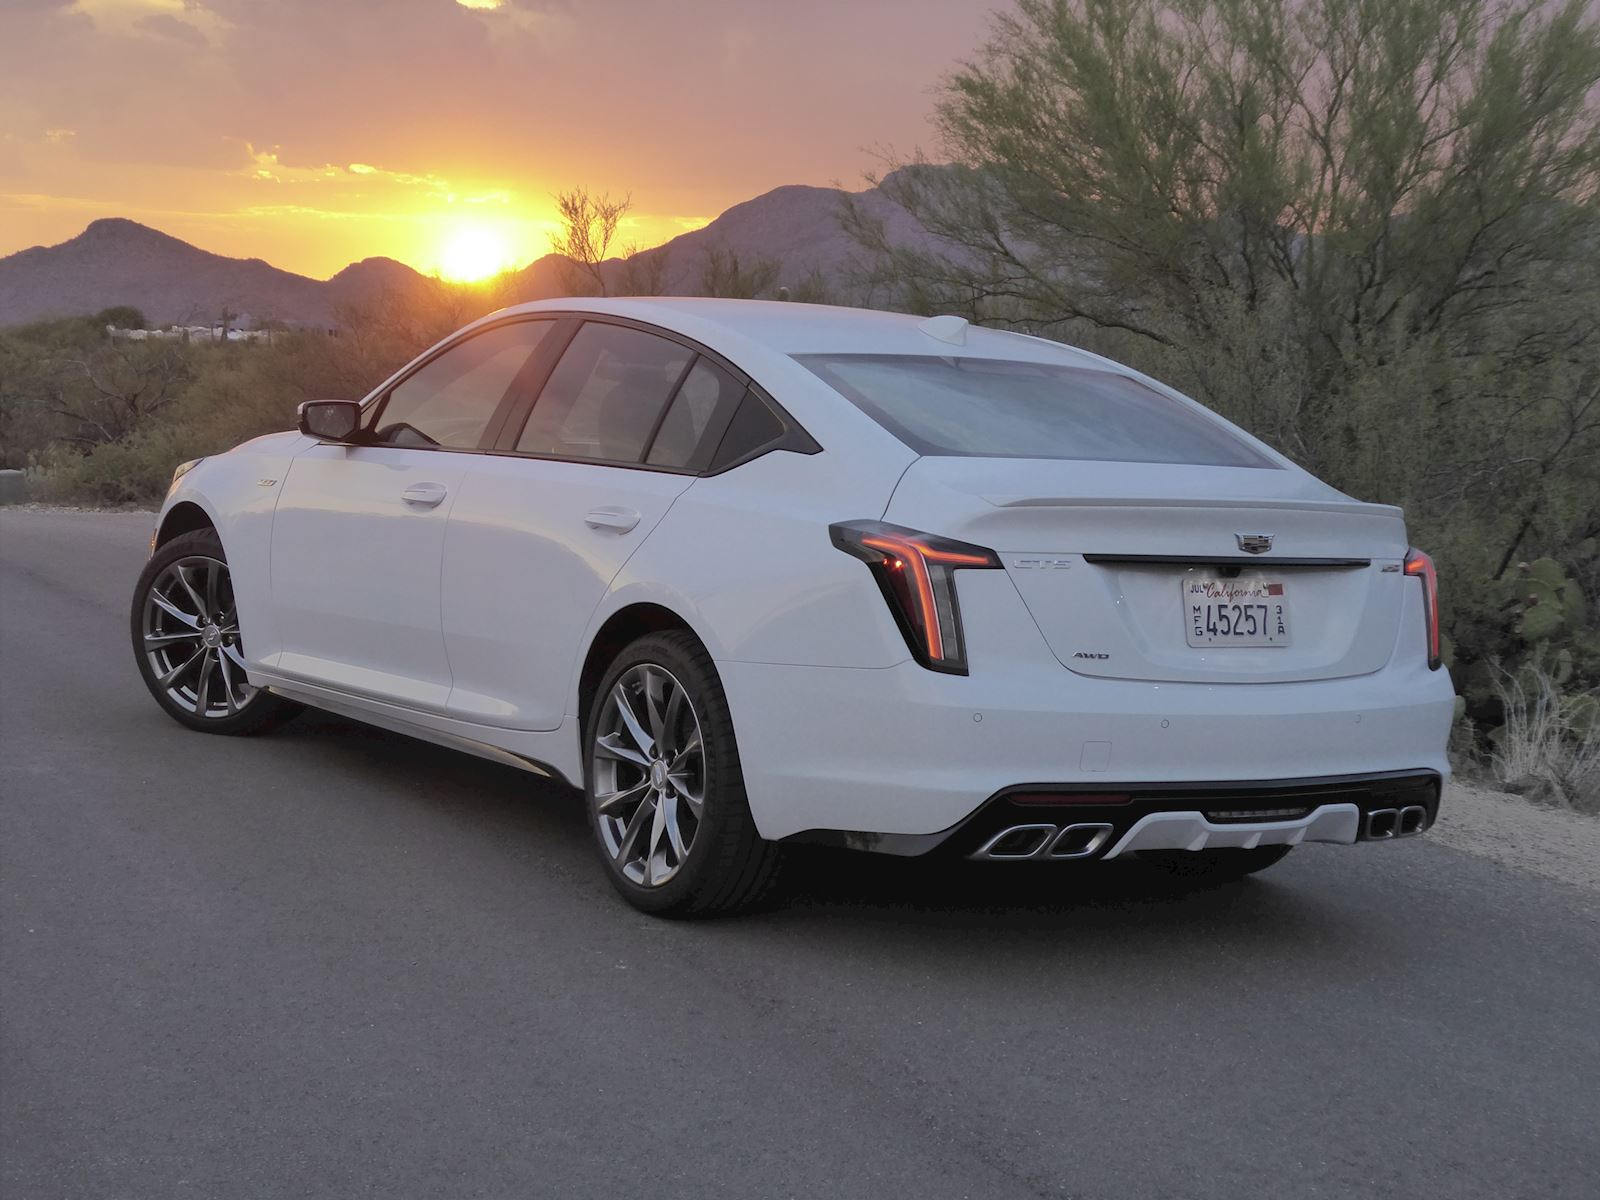 2020 Cadillac CT5 rear view